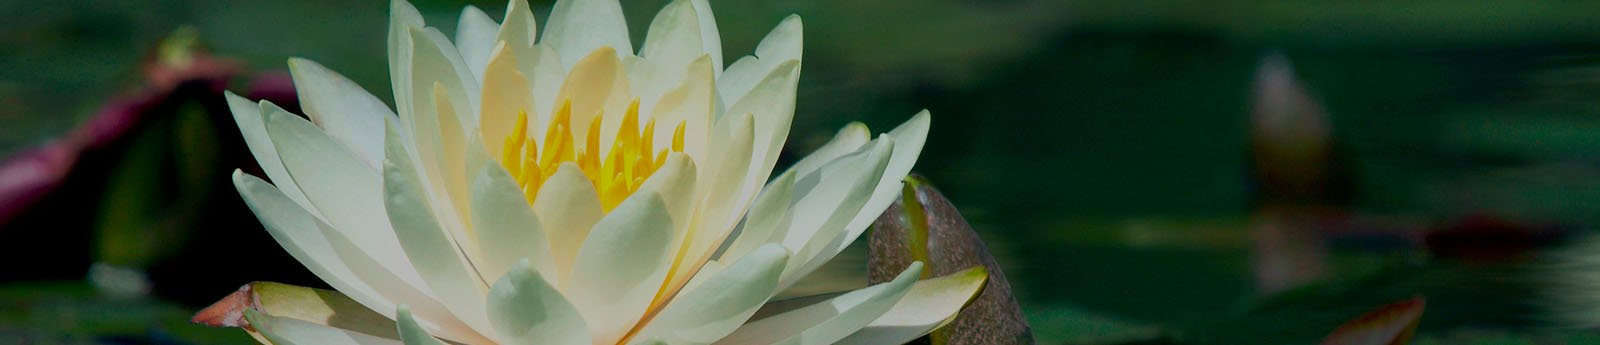 Resources | Hicks Funeral Home & Cremation Services